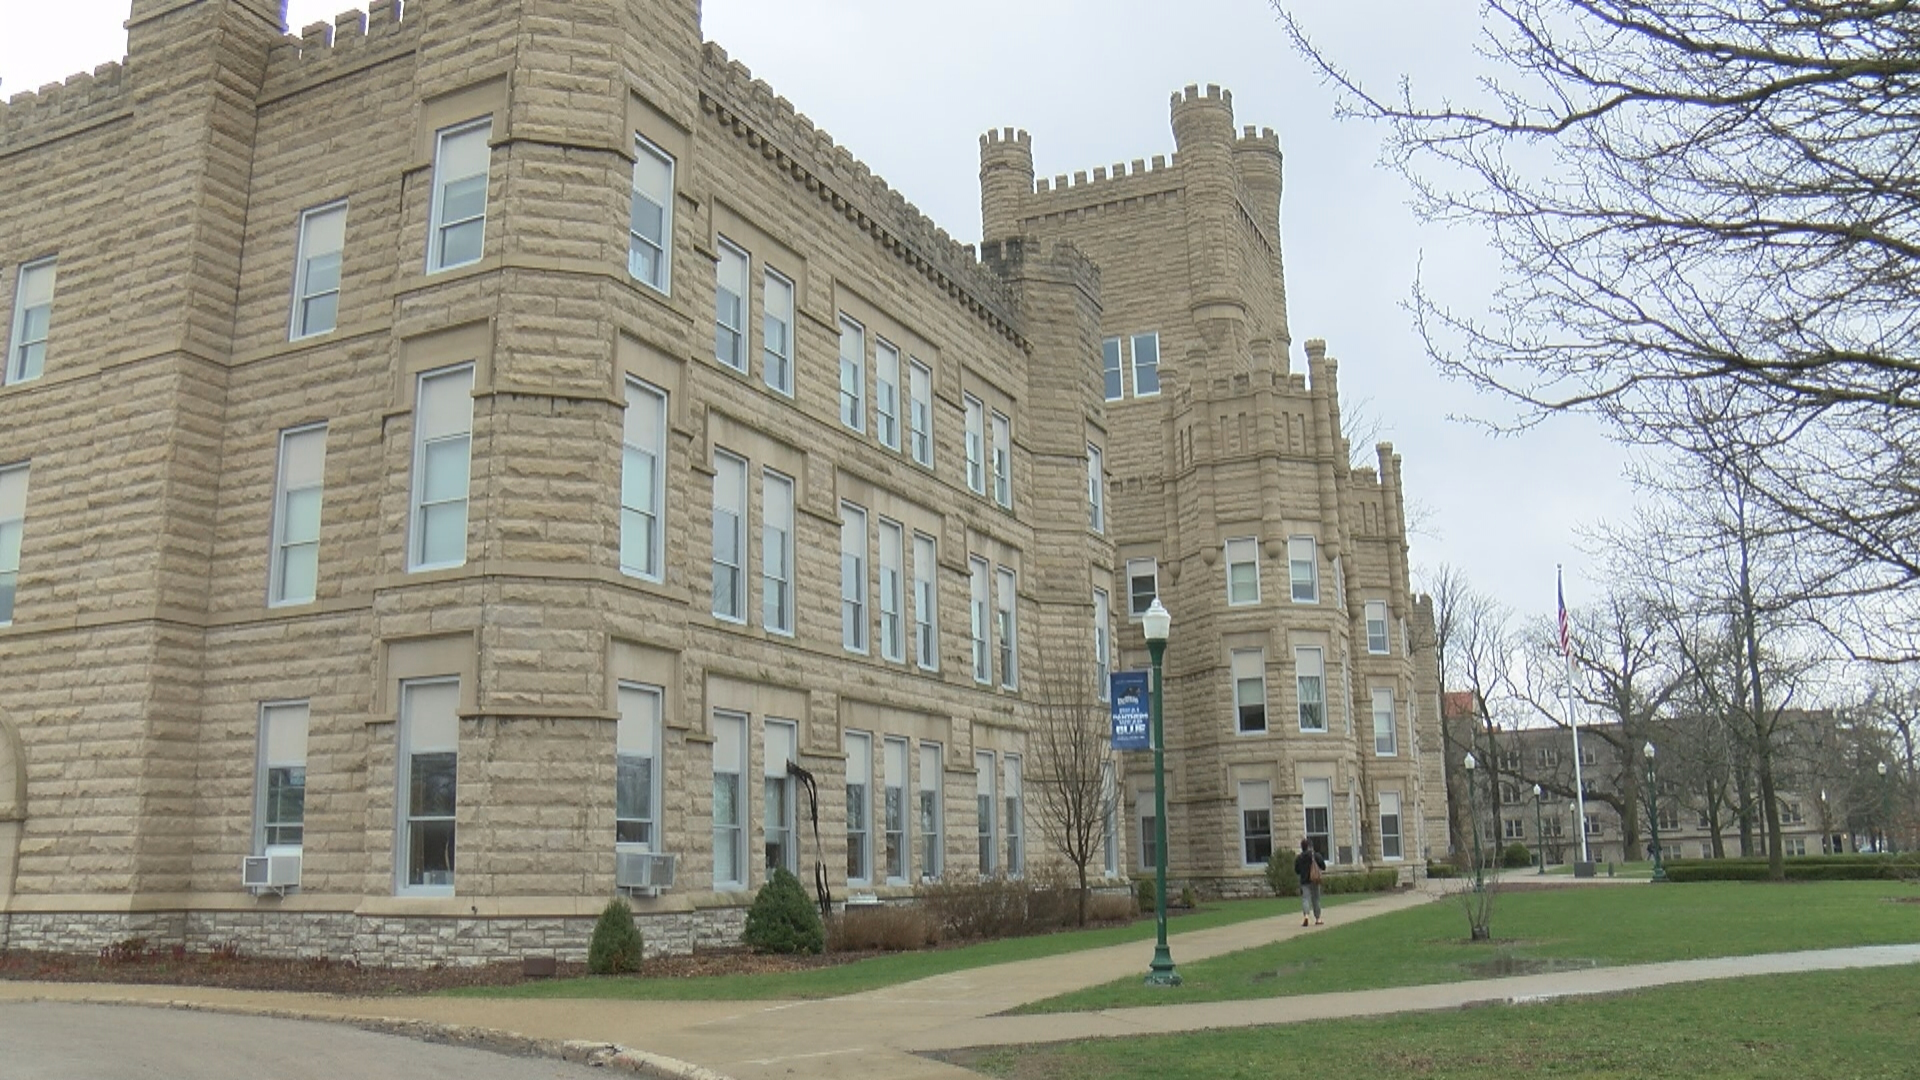 eastern illinois university_1522790100579.jpg.jpg